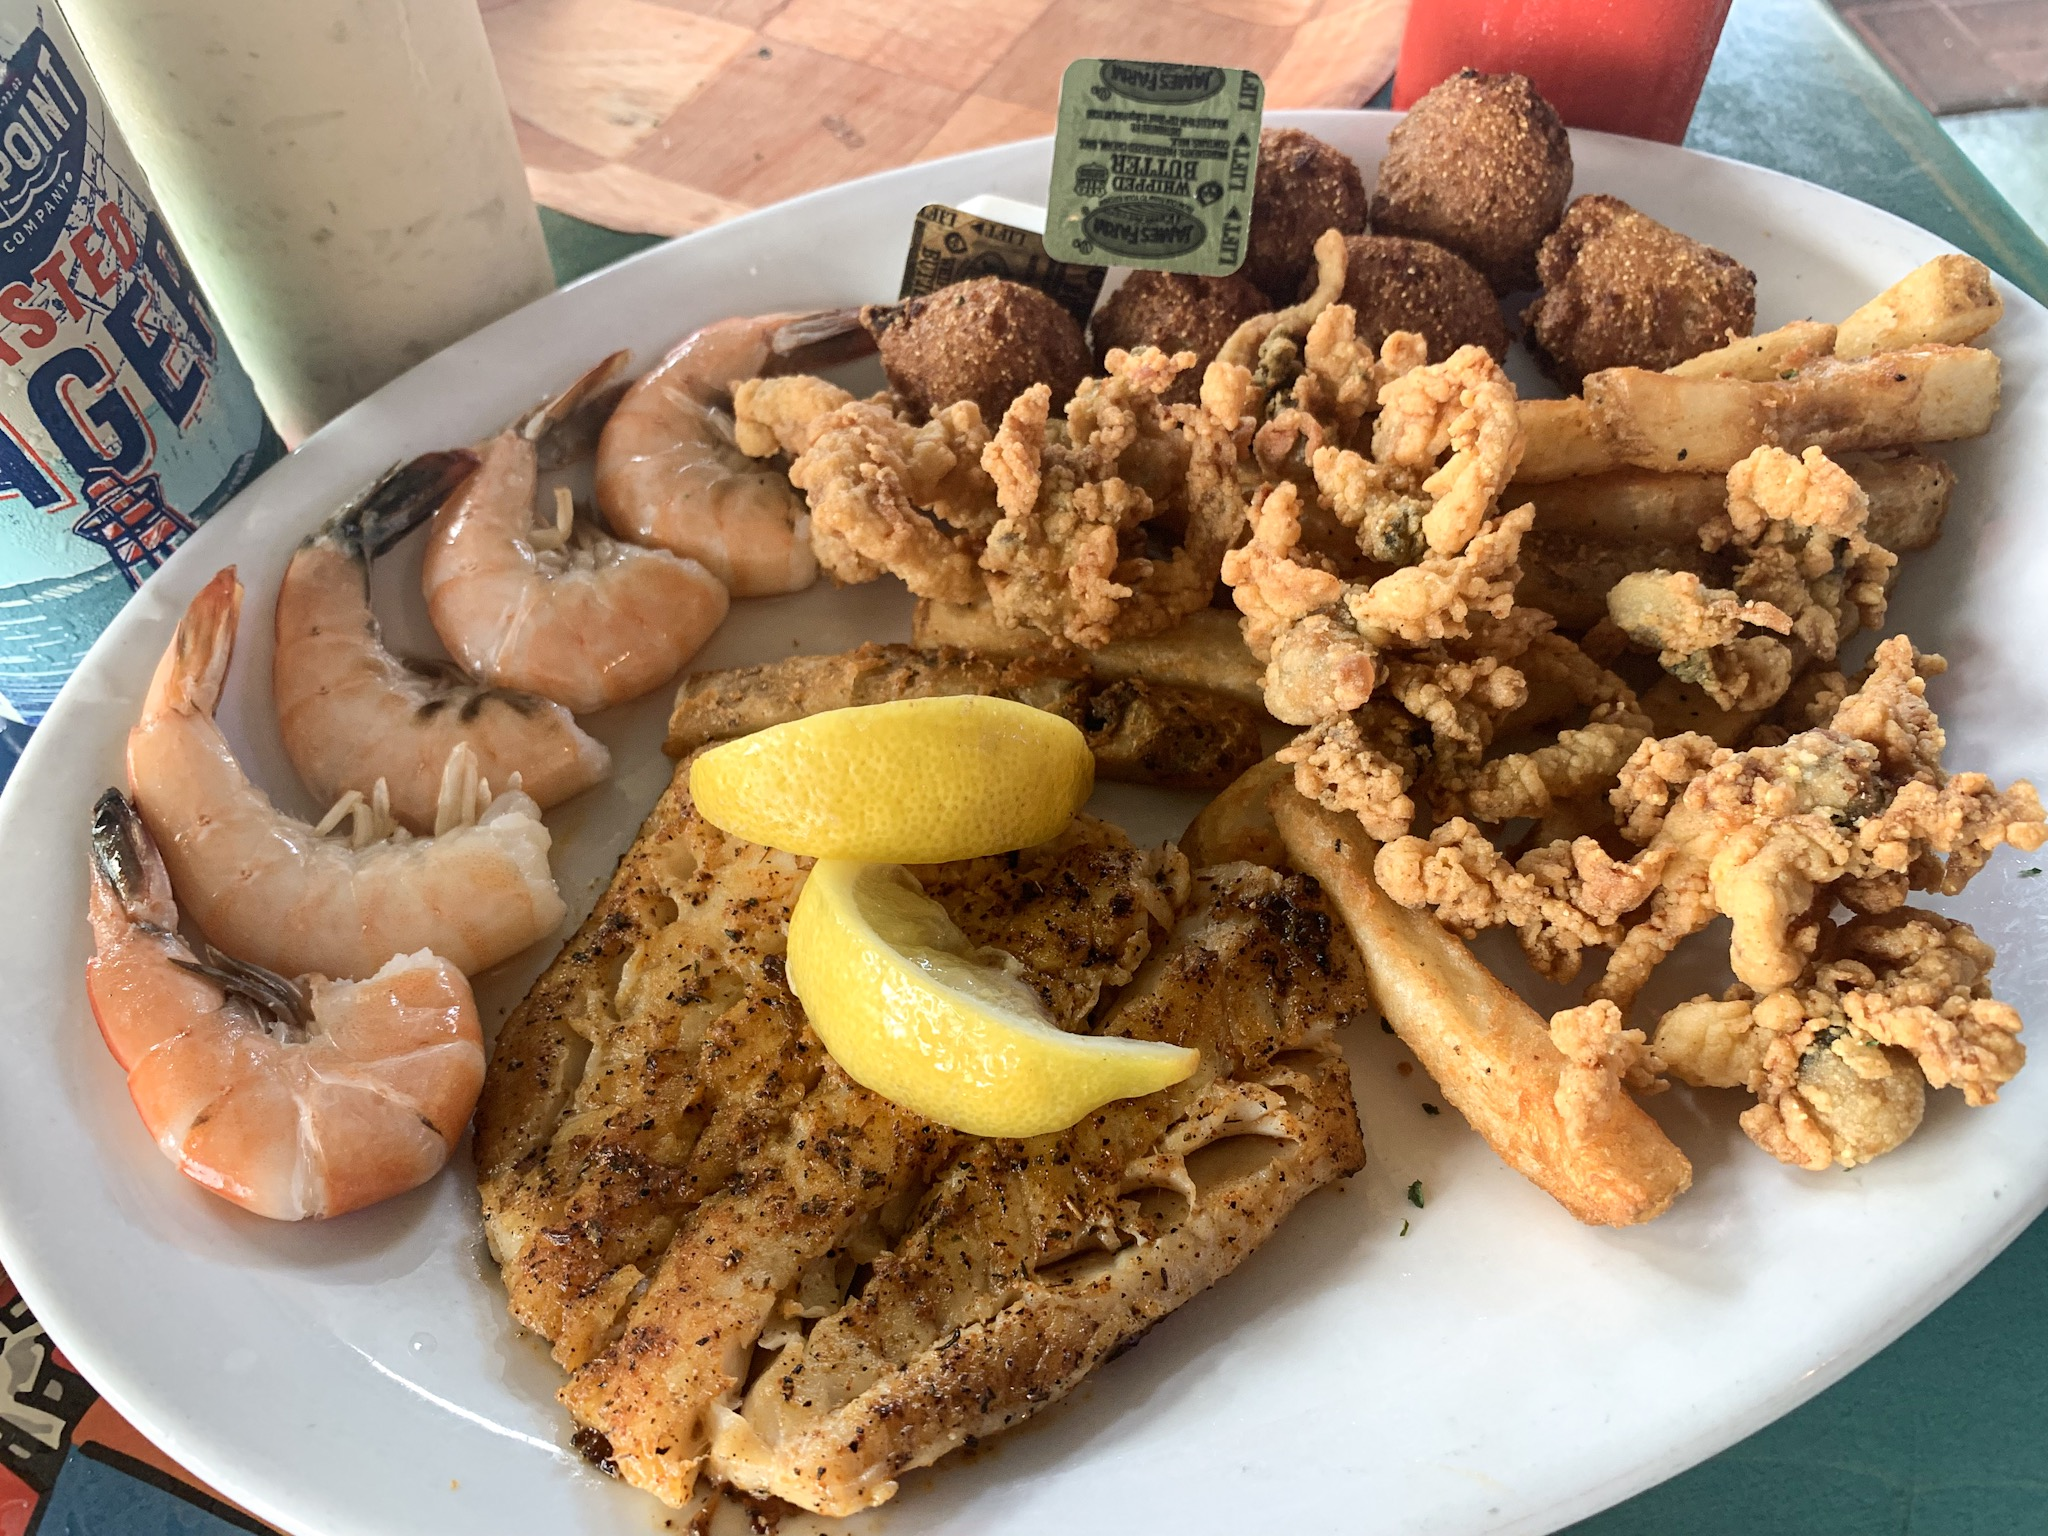 The Seafood Sampler from the Casual Clam with fried Whole Belly Clams, blackened Haddock and Peel n' eat Shrimp